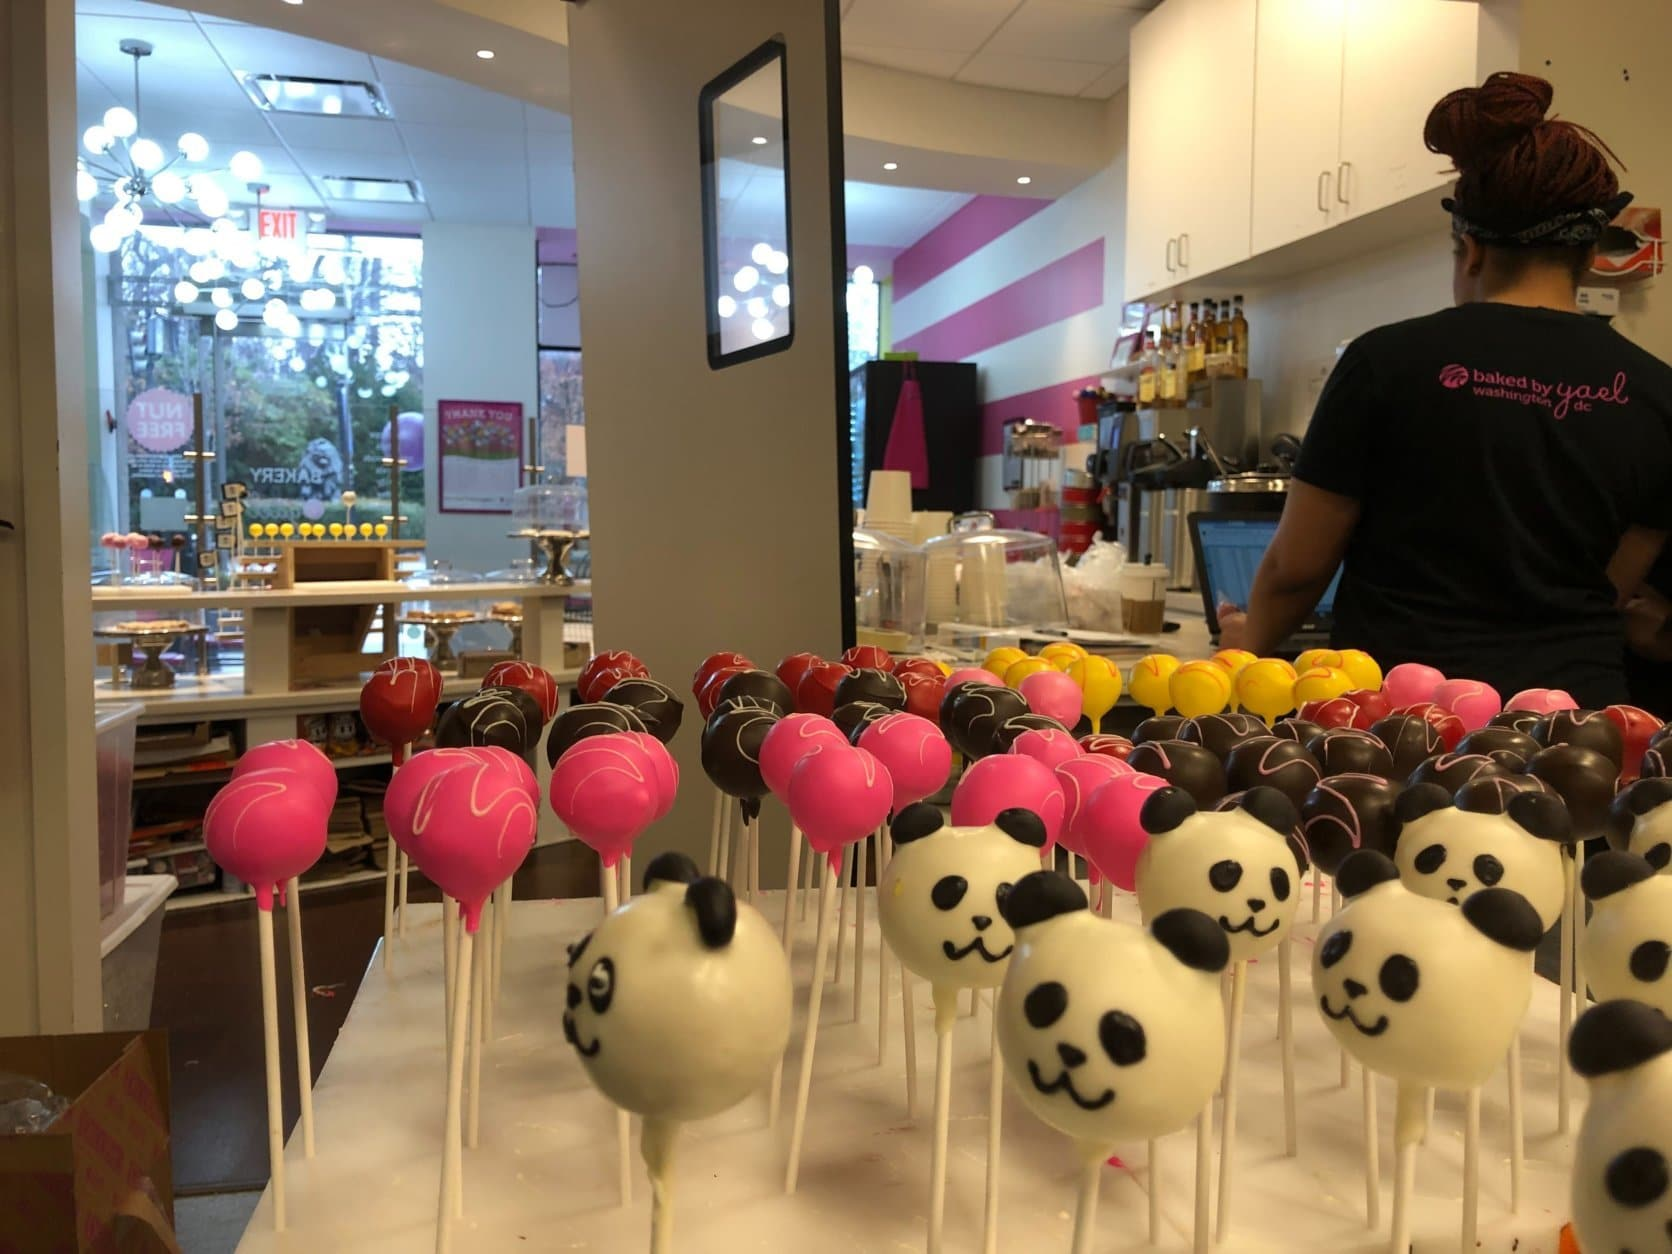 """""""If we lose all of our customers from the zoo, that's a problem,"""" said Krigman. Her bakery is among a strip of businesses on Connecticut Avenue directly across from the zoo in Northwest D.C. (WTOP/Kristi King)"""